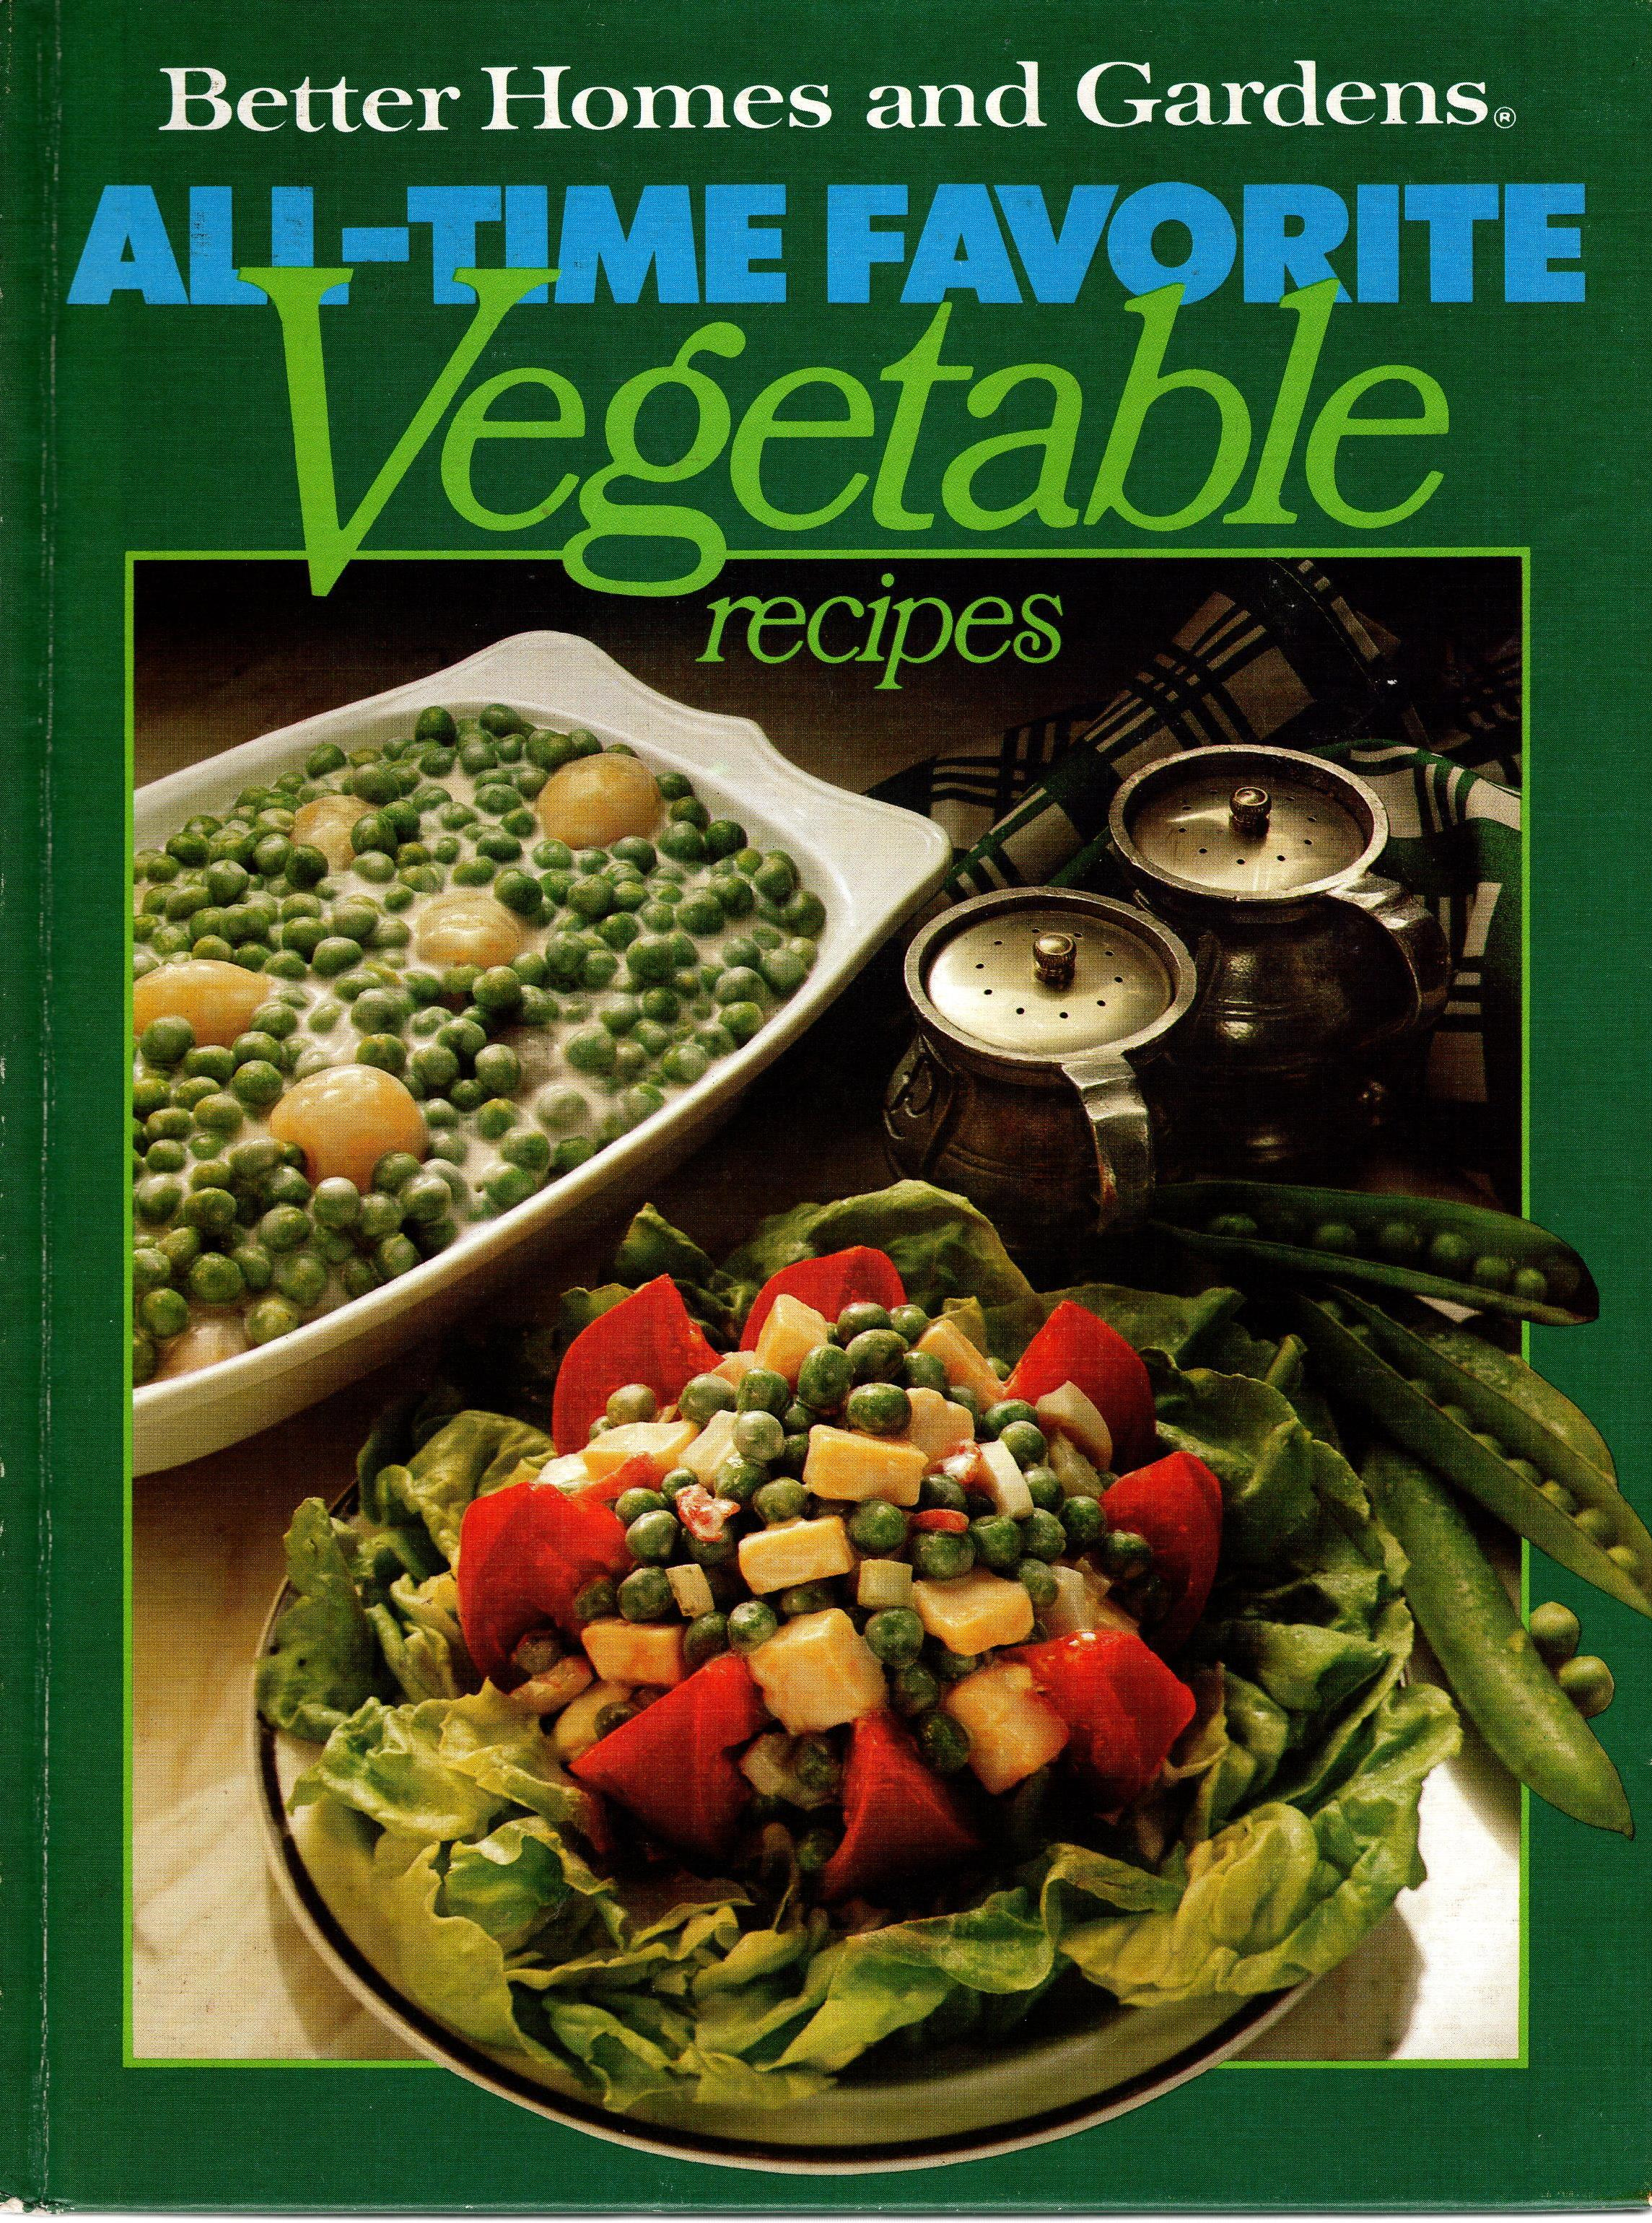 Image for BETTER HOMES AND GARDENS ALL-TIME FAVORITE VEGETABLE RECIPES